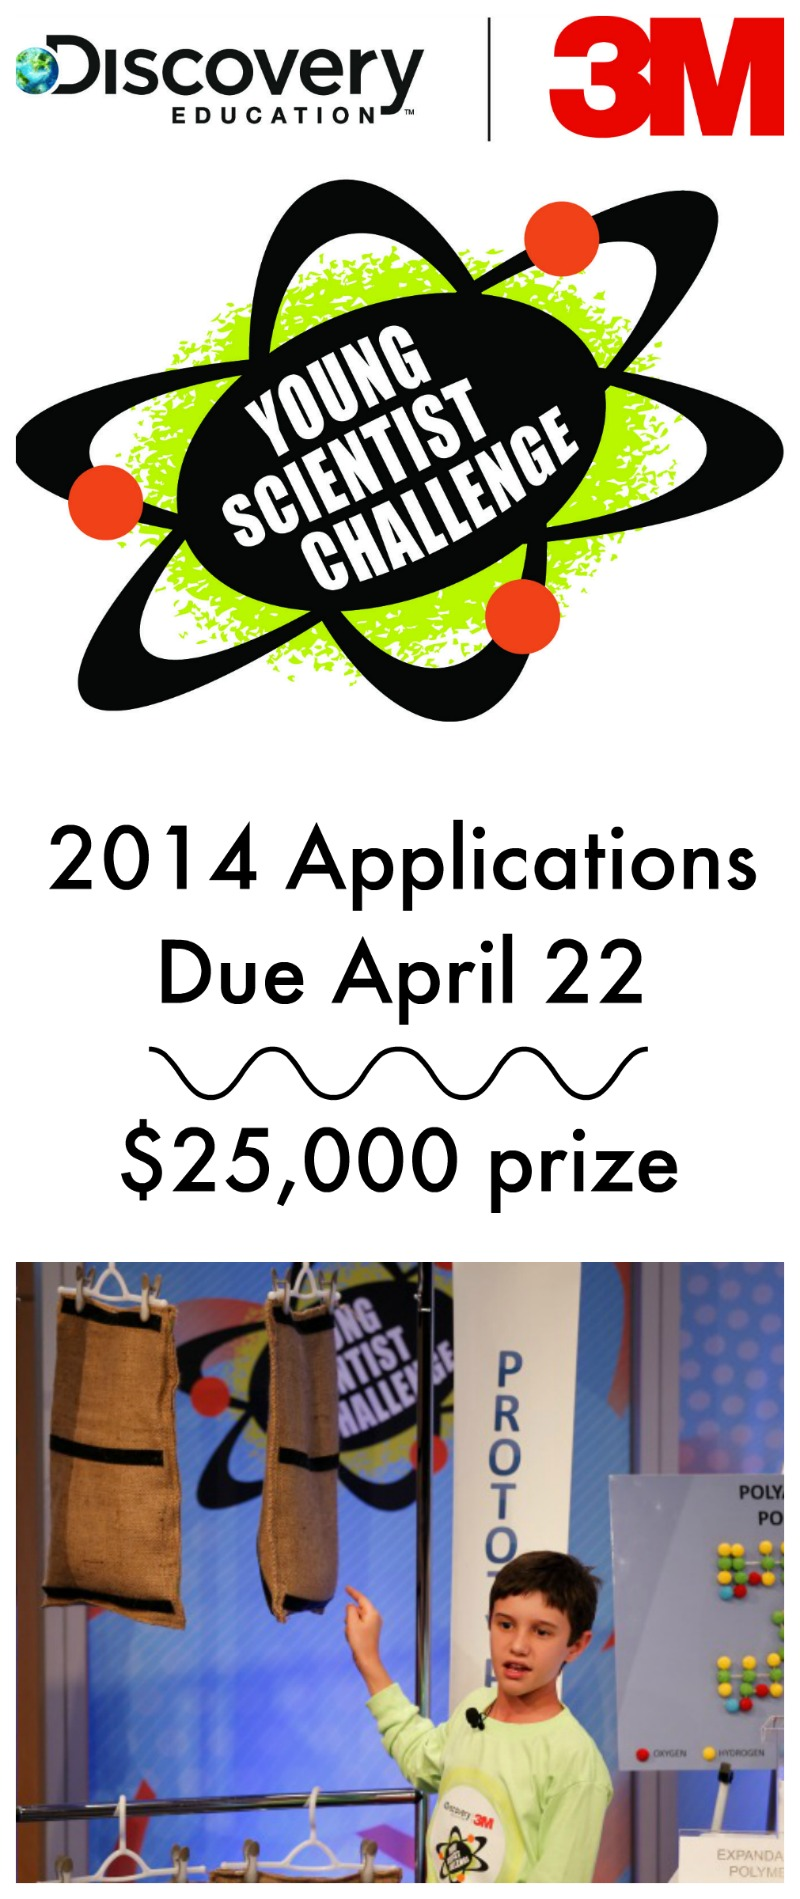 """Discover 3M Young Science Challenge for Middle School Students-Application Deadline is April 22. Ten finalists receive summer mentorship with a 3M scientist and trip to final competition. Winner earns title of """"America's Top Young Scientist"""" and $25,000."""